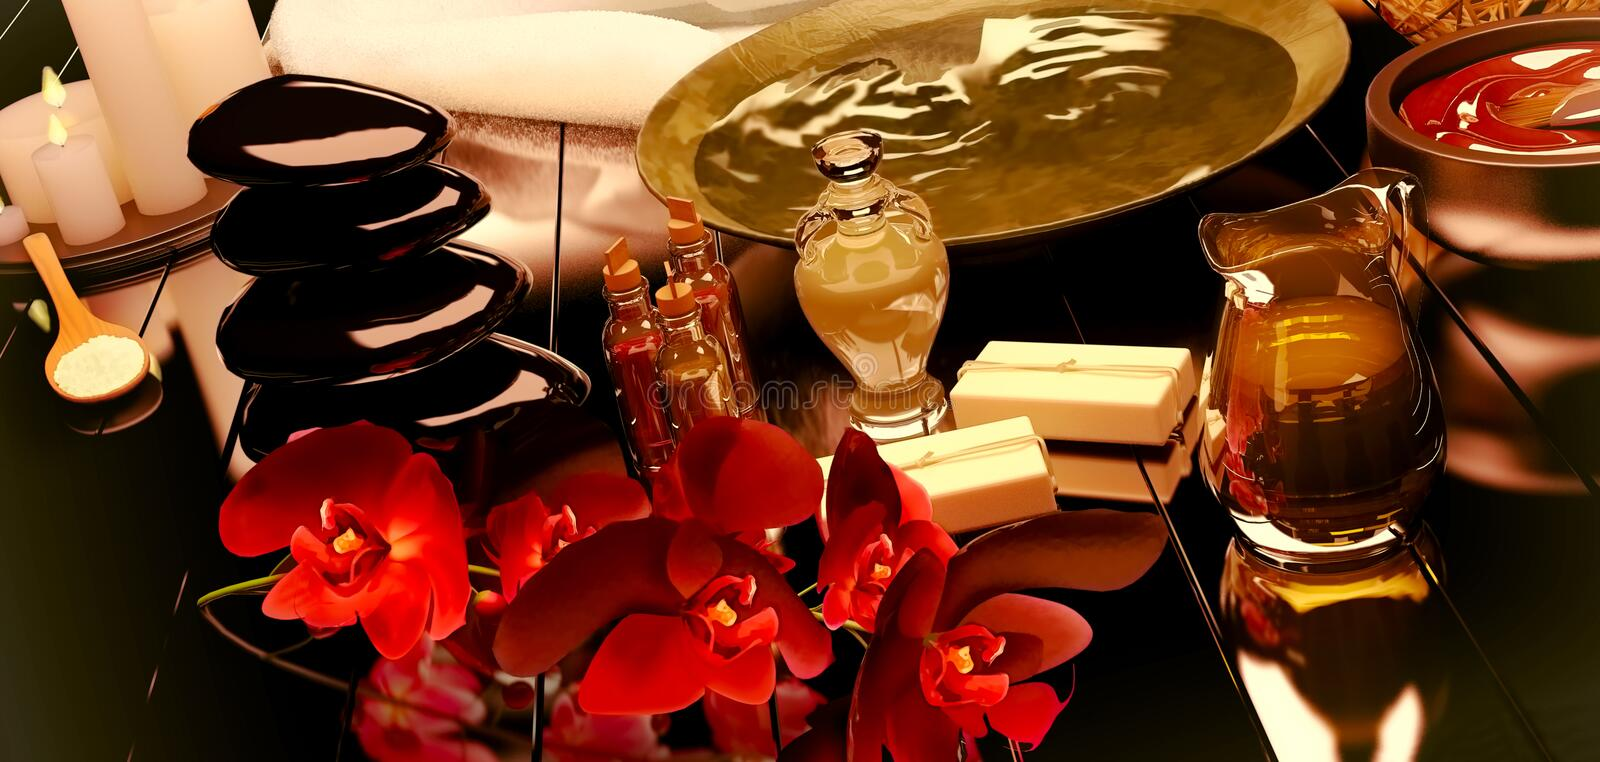 Spa still life with burning candles and flowers of an orchid. stock photos